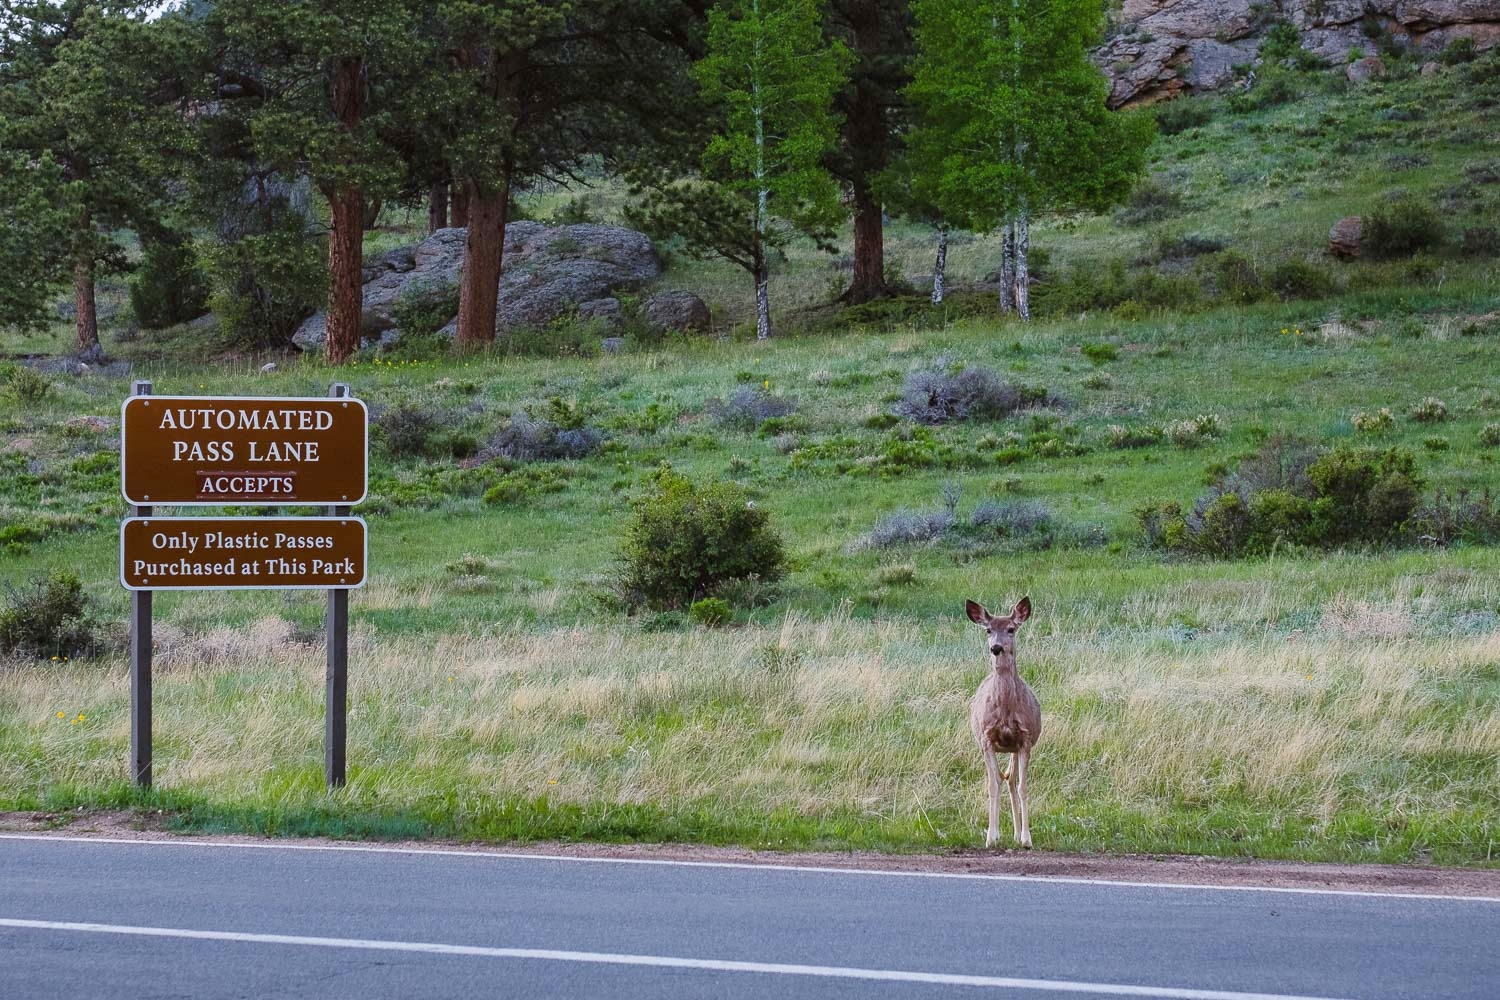 """Deer by the road, Rocky Mountain National Park. Travel photography and guide by © Natasha Lequepeys for """"And Then I Met Yoko"""". #colorado #usa #denver #rockymountainnationalpark #rmnp #deer #travelguide #photoblog #travelblog #travelphotography #landscapephotography #coloradoitinerary #fujifilm #hiking #nature #trails #getoutdoors #animals #nationalpark #wildlifephotography"""